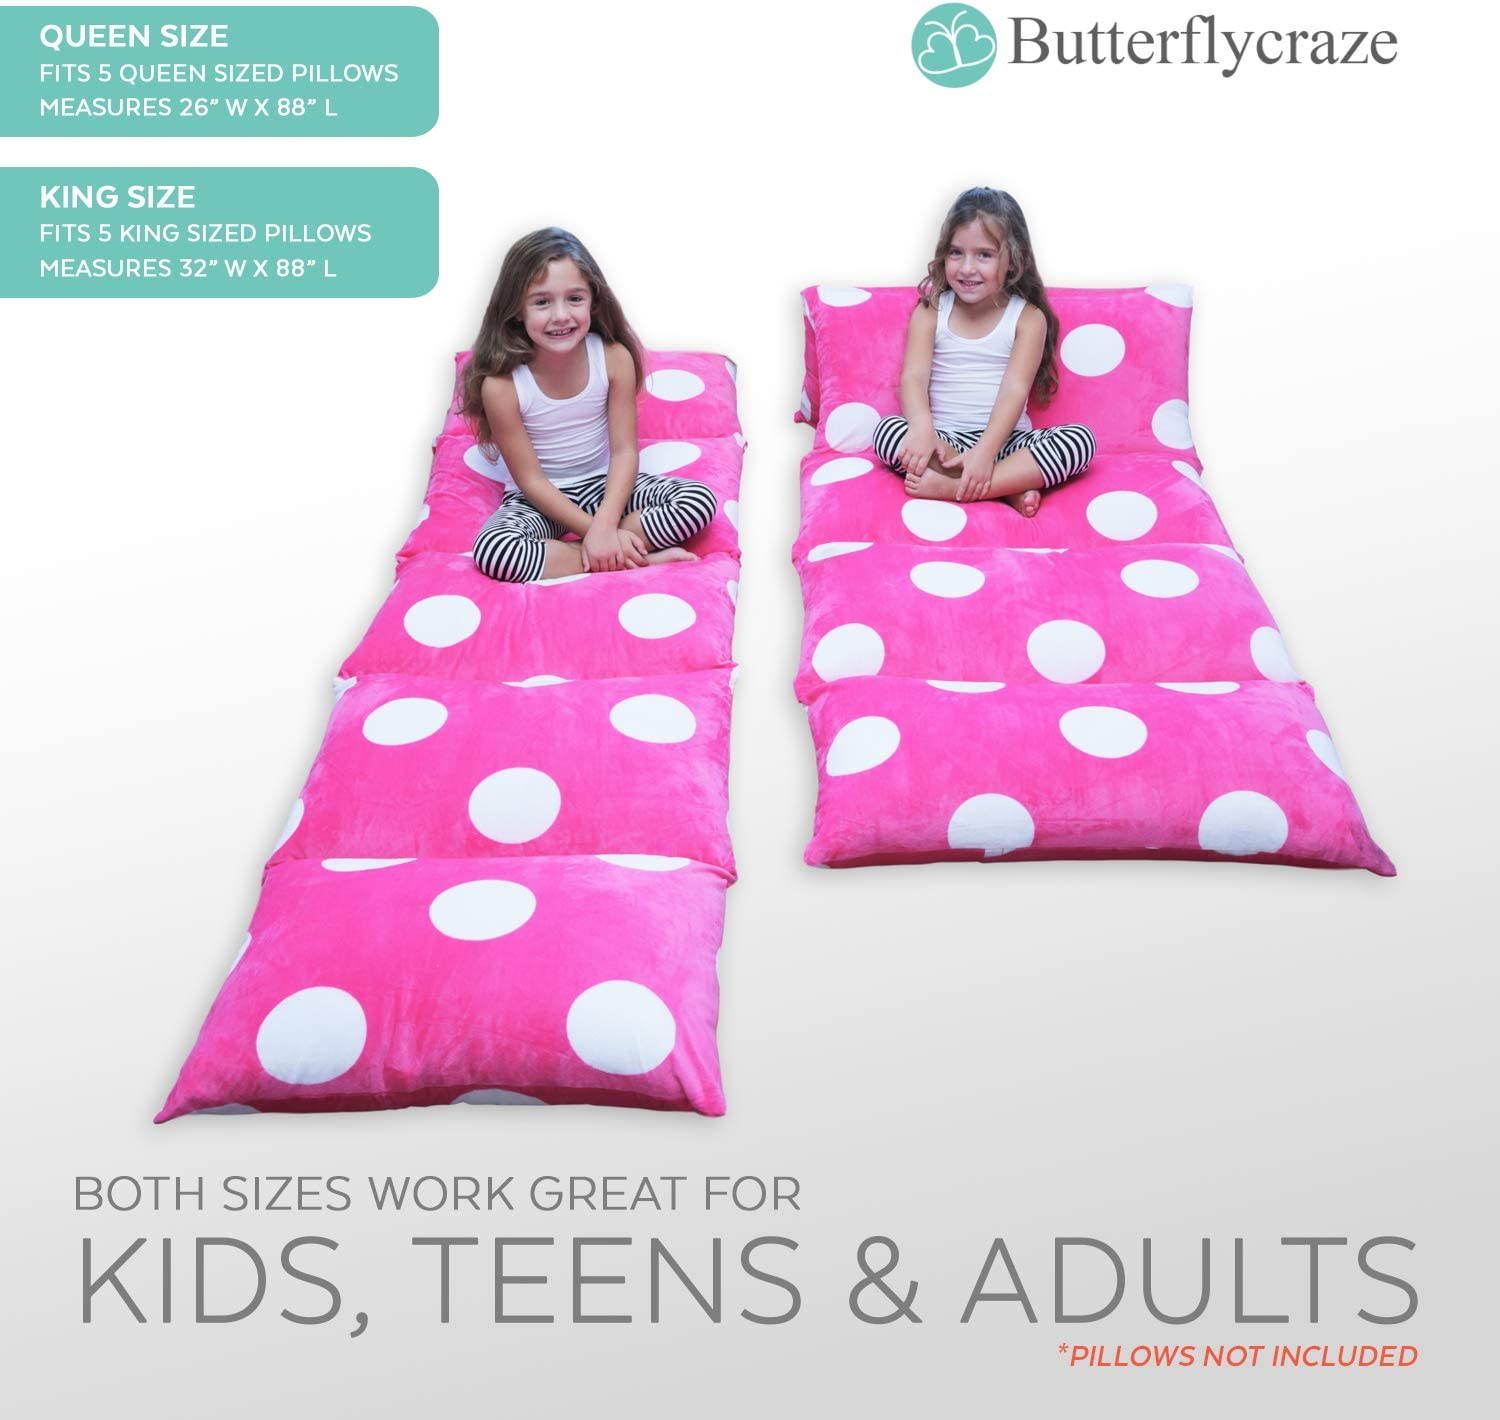 Great for SLEEPOVERS Slumber Parties Perfect Reading and Watching TV Cushion Luxurious Premium Plush Fabric Butterfly Craze Girls Floor Lounger Seats Cover and Pillow Cover Made of Super Soft